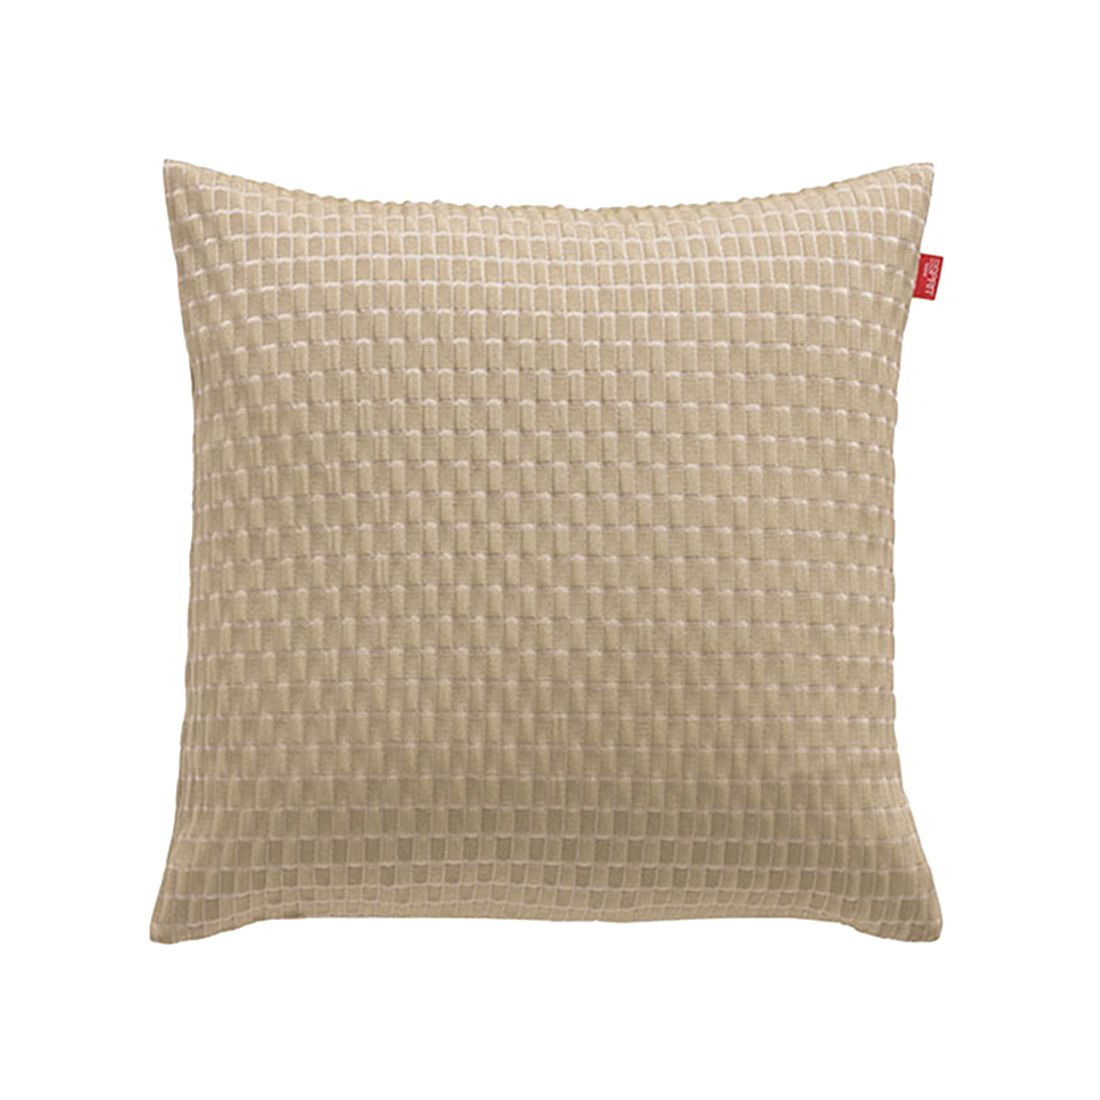 Coussin guide d 39 achat - Taille coussin standard ...